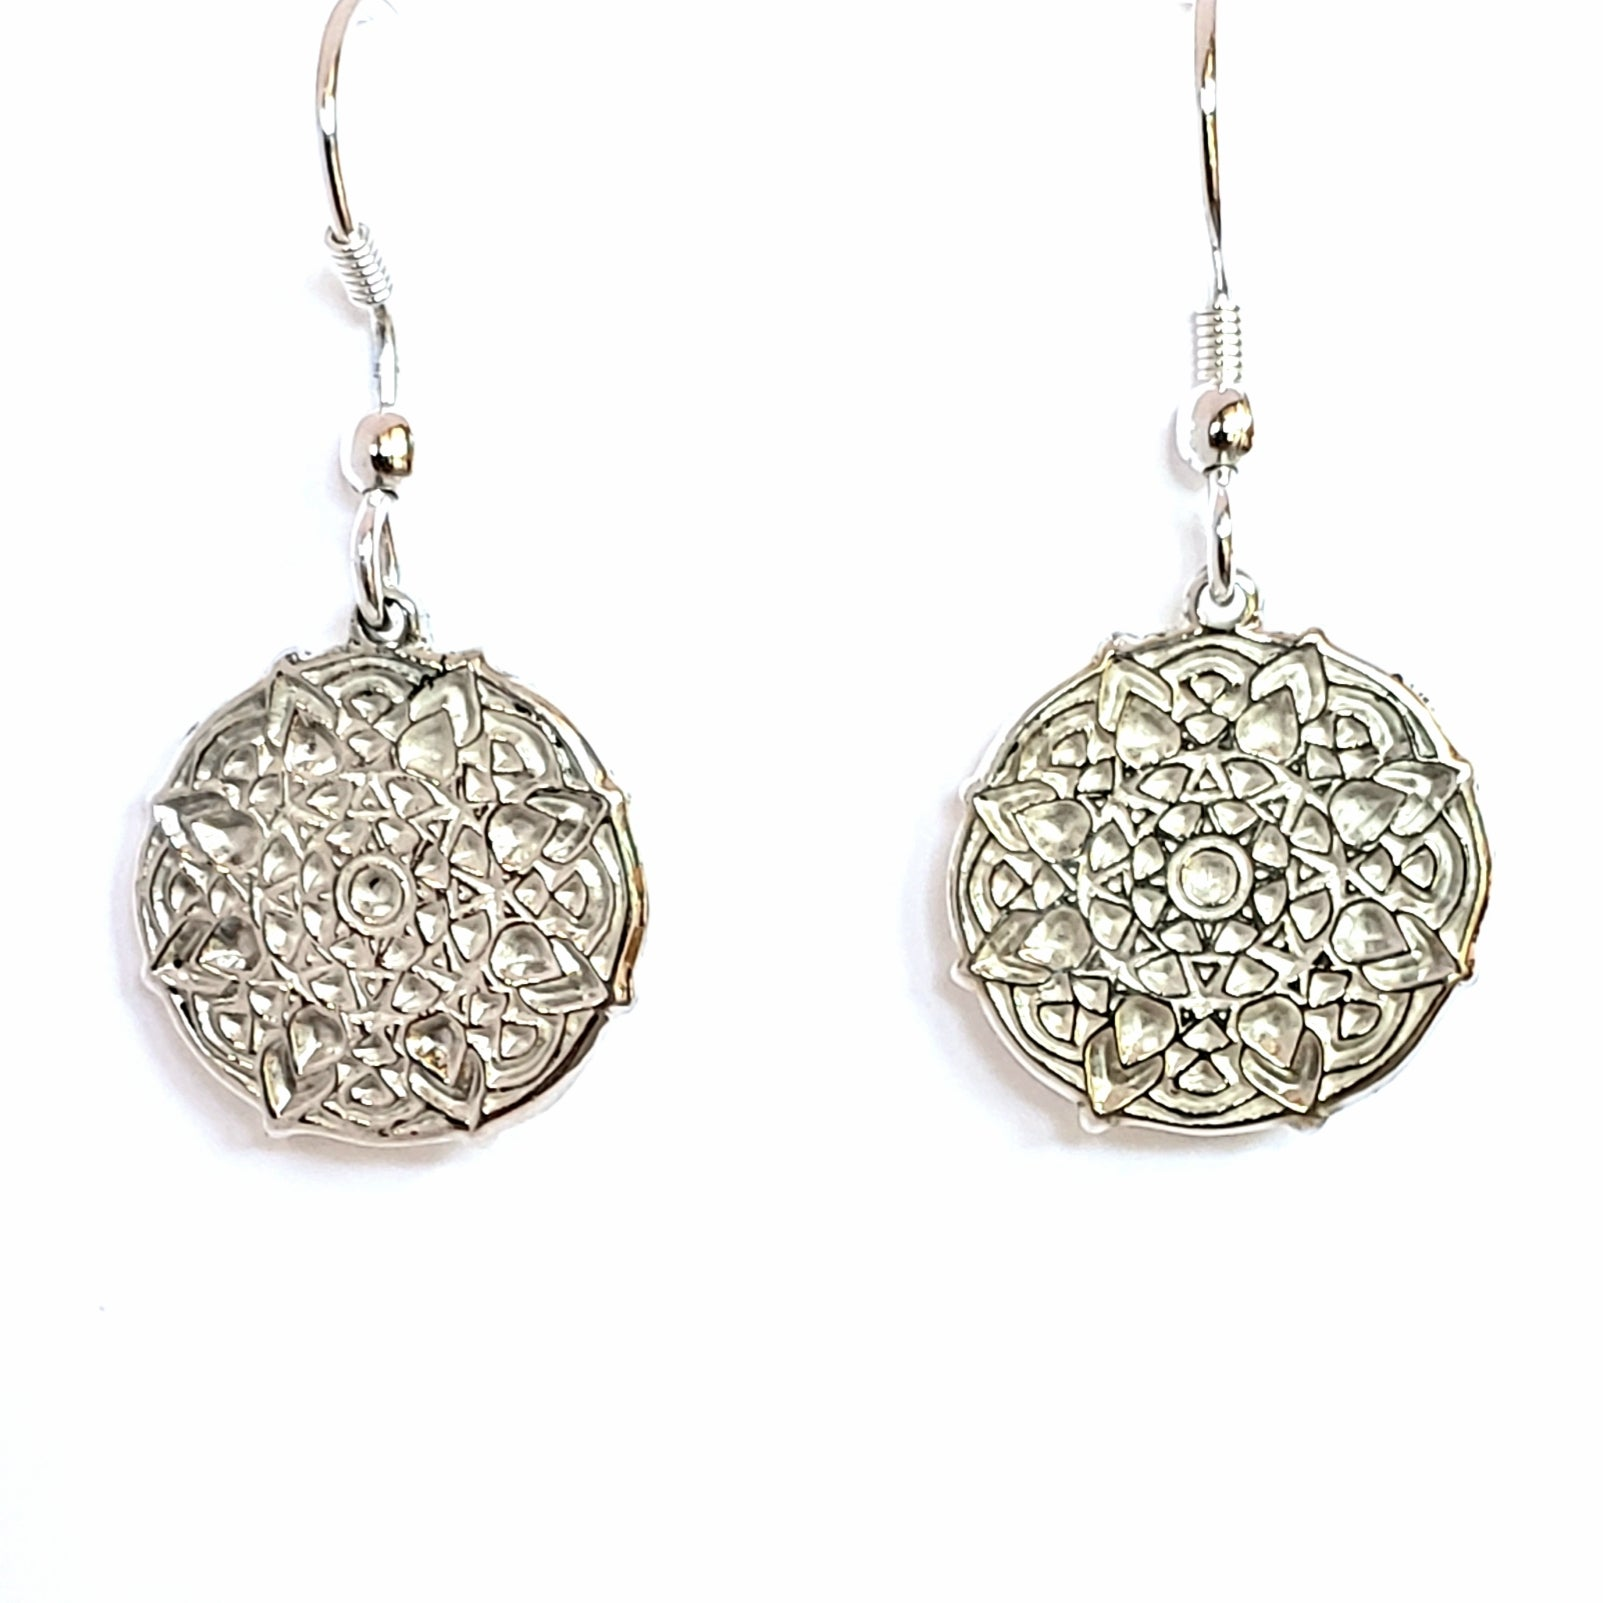 Mandala dangle earrings 1""